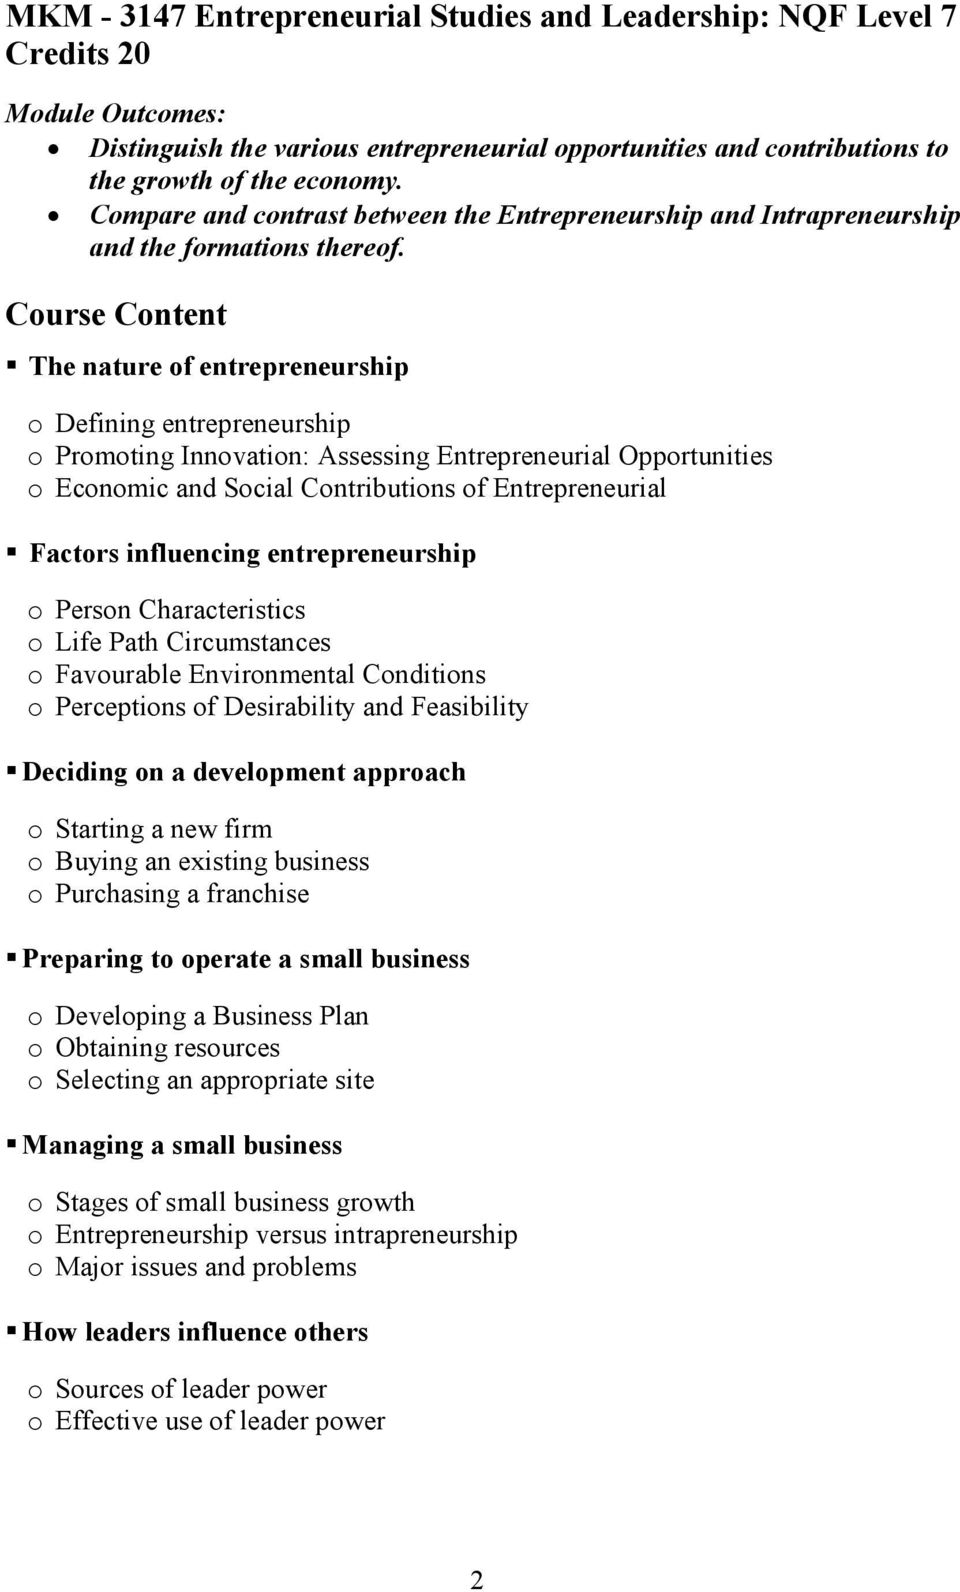 The nature of entrepreneurship o Defining entrepreneurship o Promoting Innovation: Assessing Entrepreneurial Opportunities o Economic and Social Contributions of Entrepreneurial Factors influencing